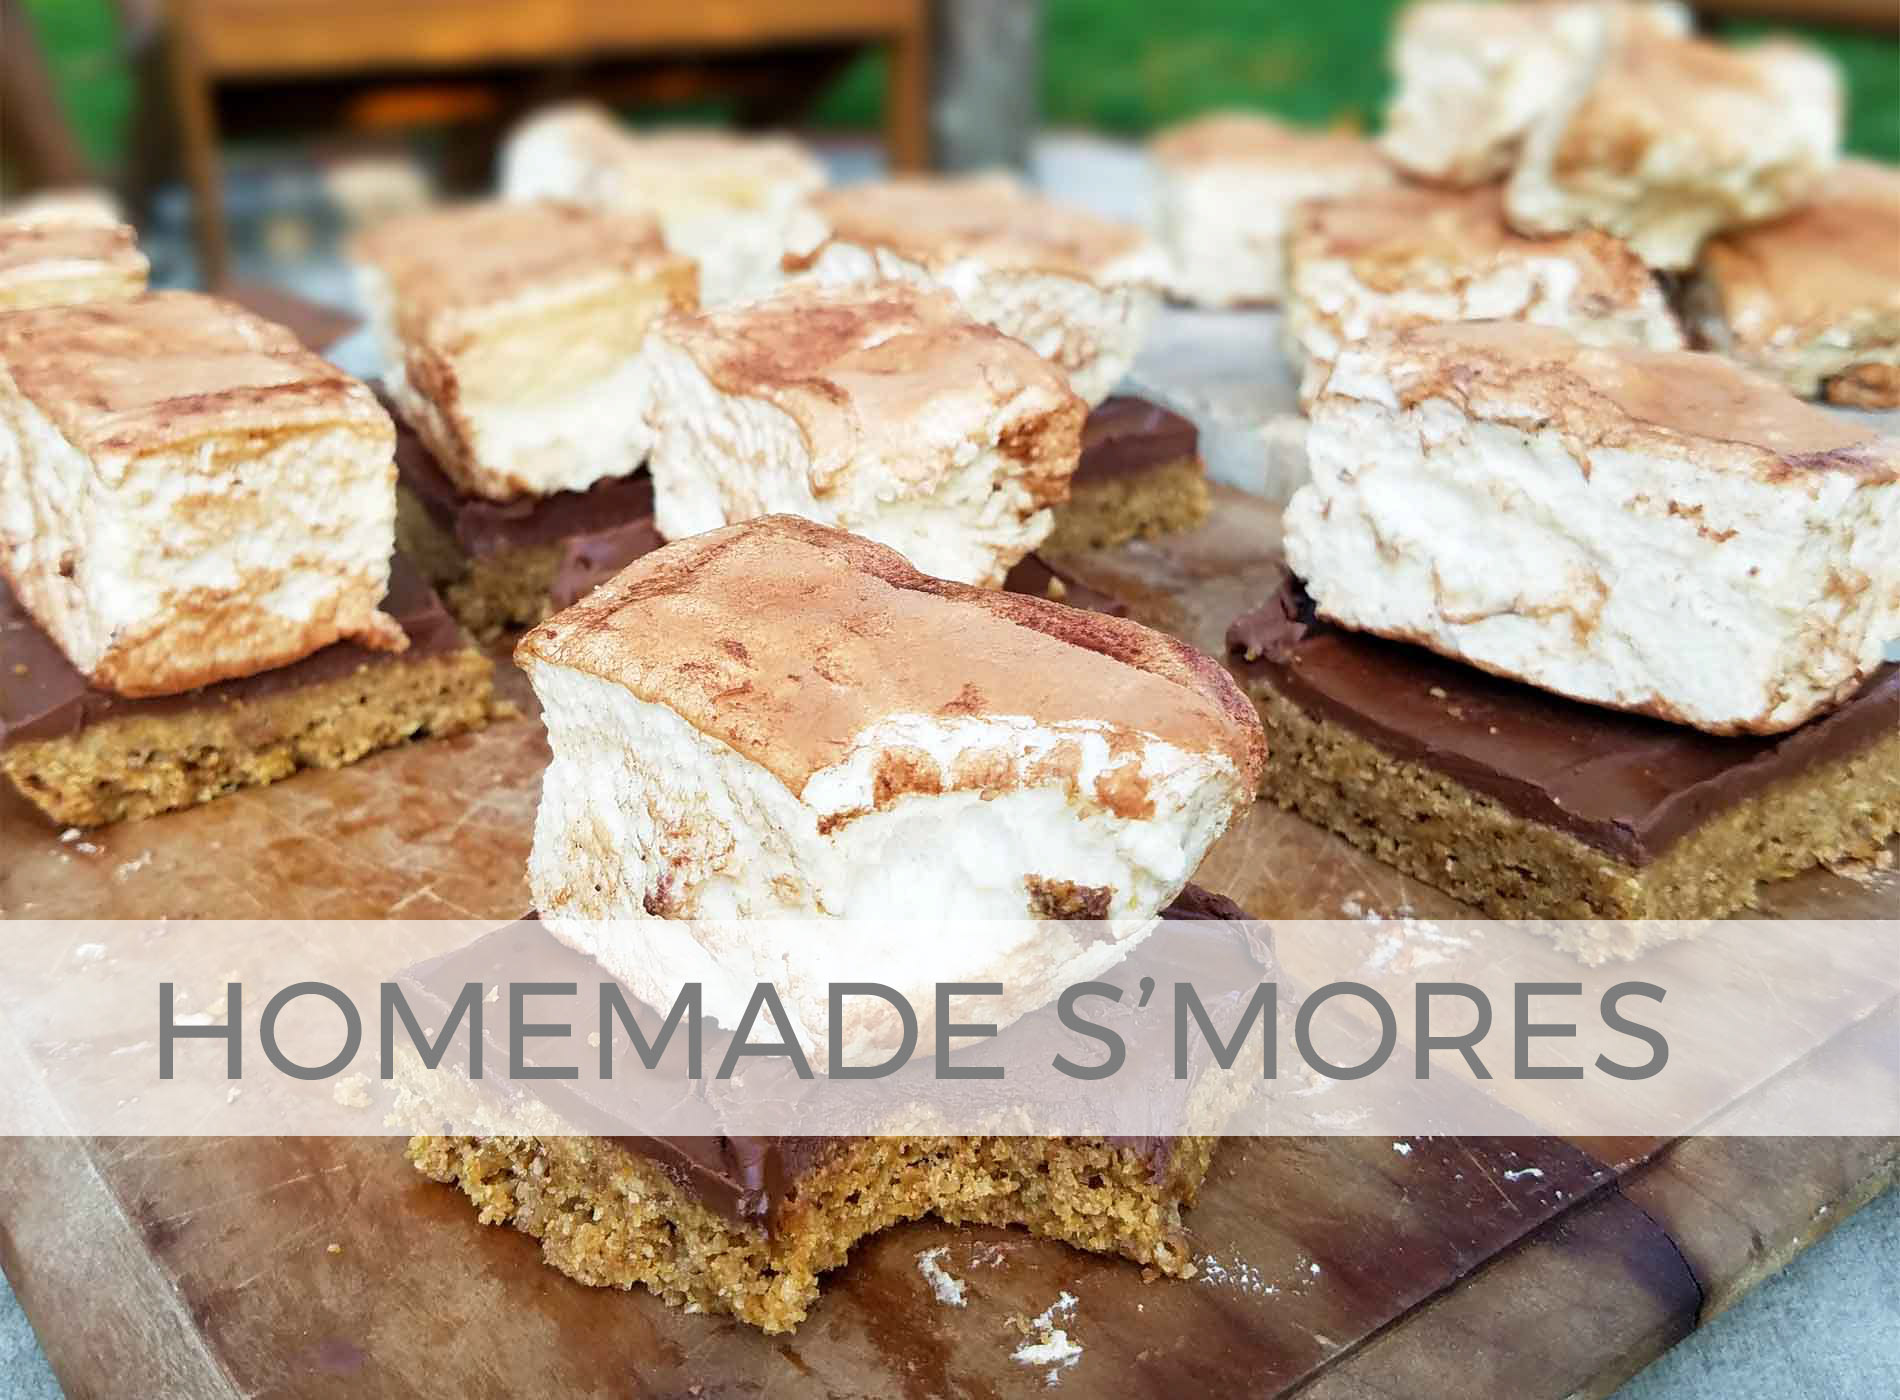 Healthy Homemade S'mores with Marshmallows by Larissa of Prodigal Pieces | prodigalpieces.com